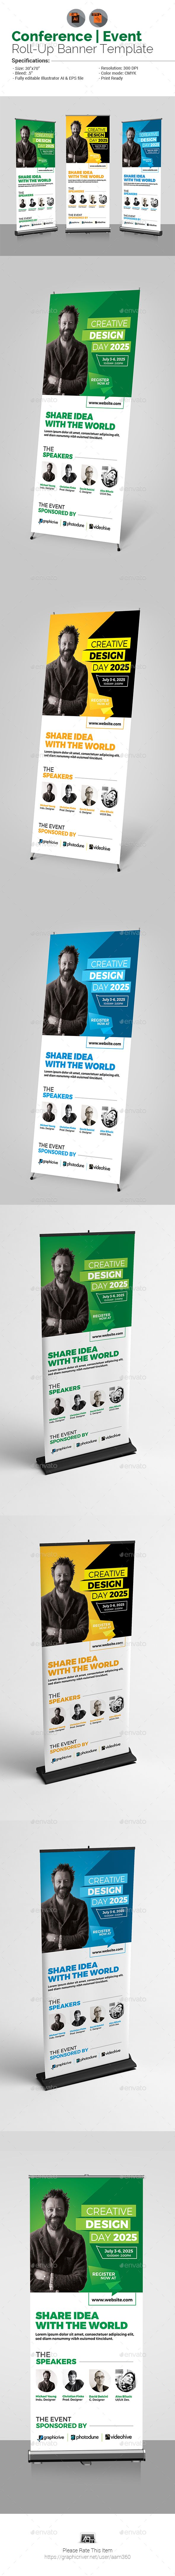 Conference Roll-Up Banner Template by aam360 Similar Templates:INFORMATIONS FOR ...